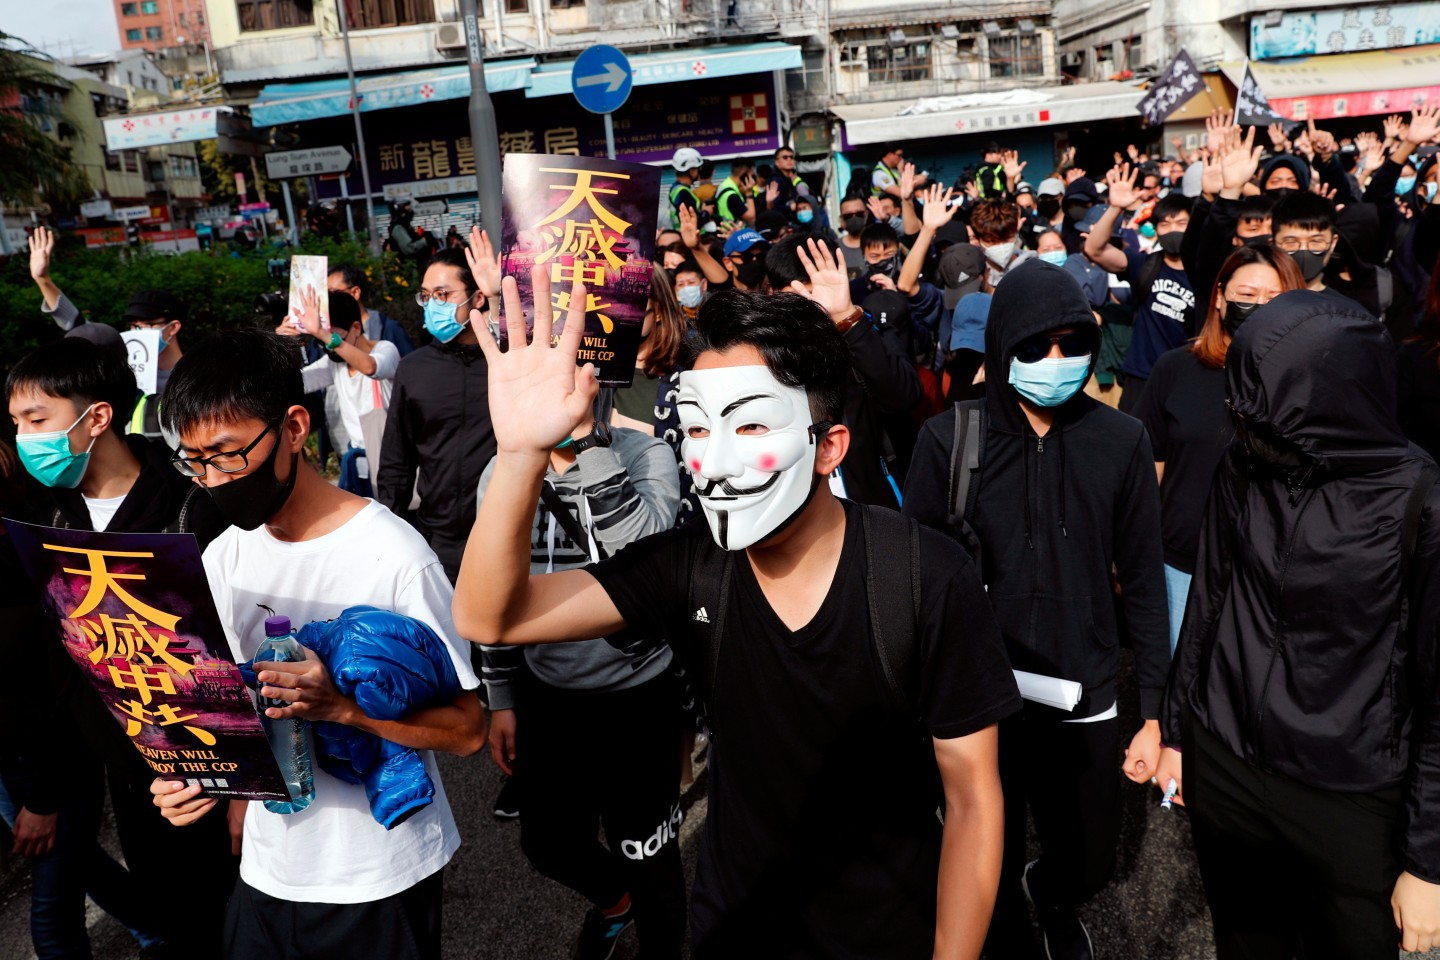 There seems to be no end to Hong Kong's unrest at present. Anti-government protesters are seen marching at an anti-parallel trading protest at Sheung Shui, a border town in Hong Kong on January 5, 2020. (Tyrone Siu/Reuters)